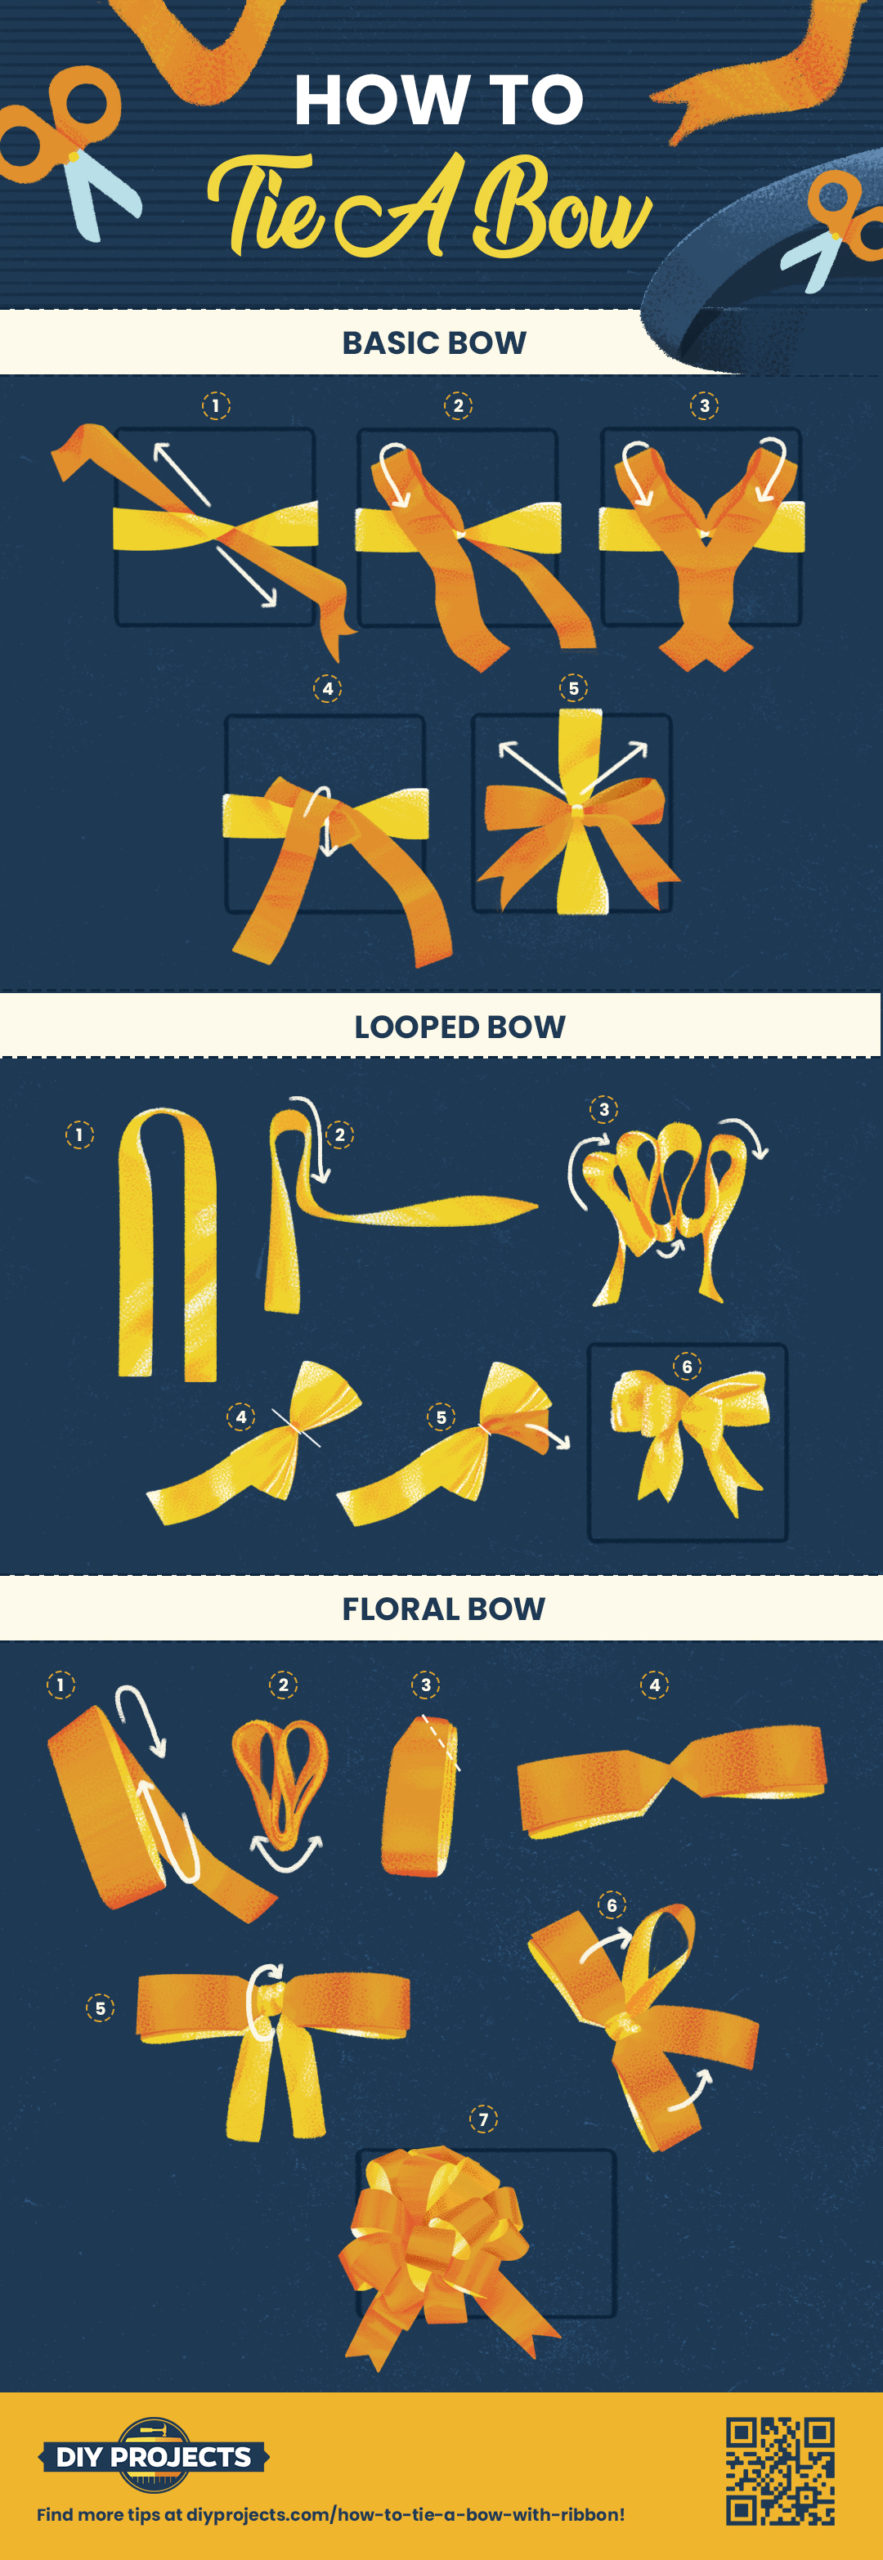 How to Tie a Bow | Make 3 Beautiful Bows With Ribbon [INFOGRAPHIC]